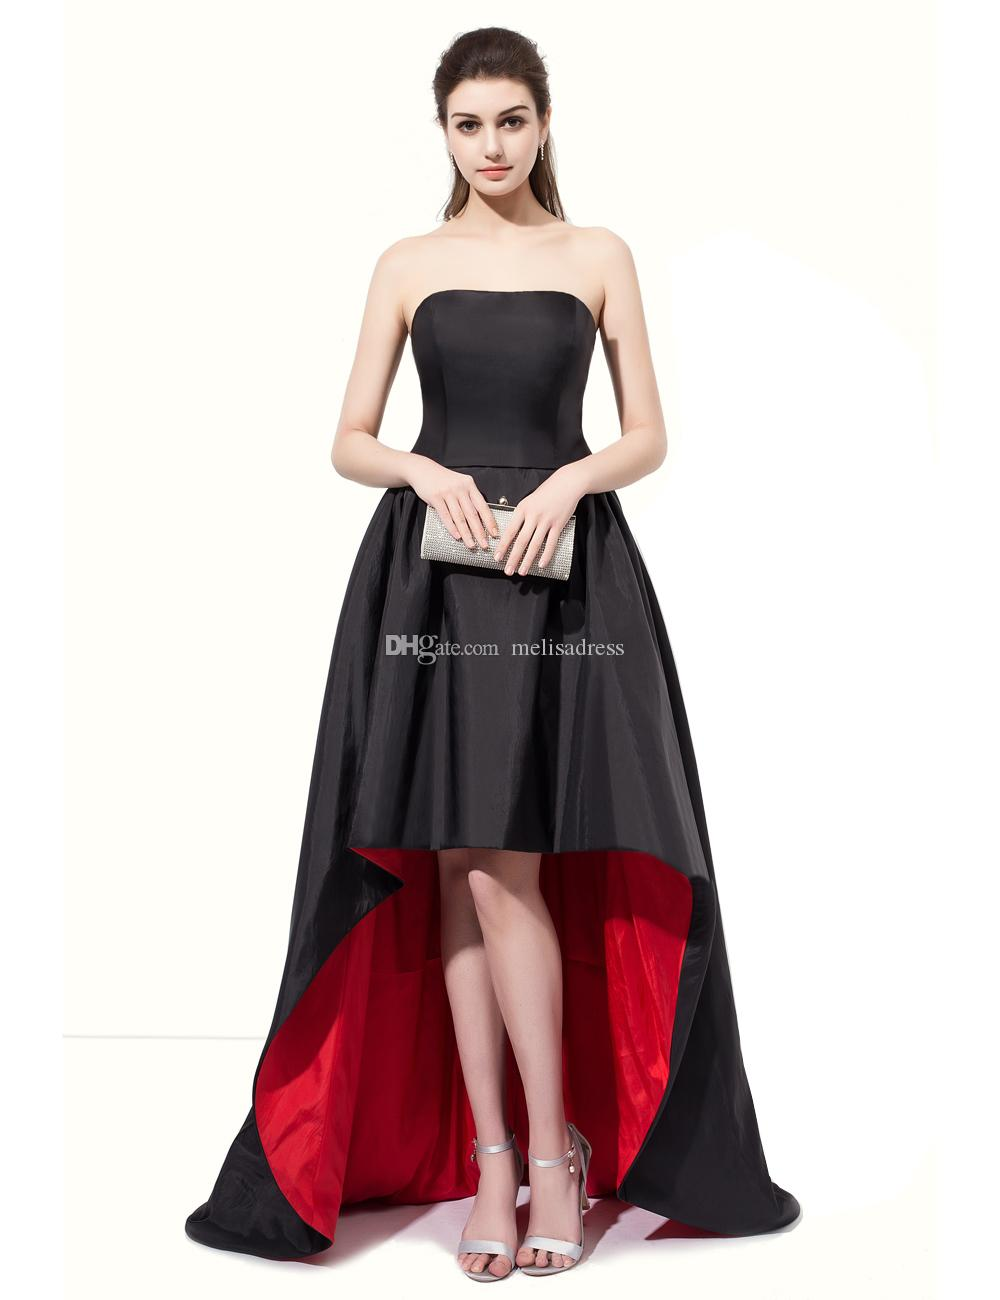 Real Samples Strapless Short Front Long Back Evening Gown Black And Red High  Low Prom Dresses With Two Pockets For Masquerade Alternative Prom Dresses  Buy ... c742e05074c1